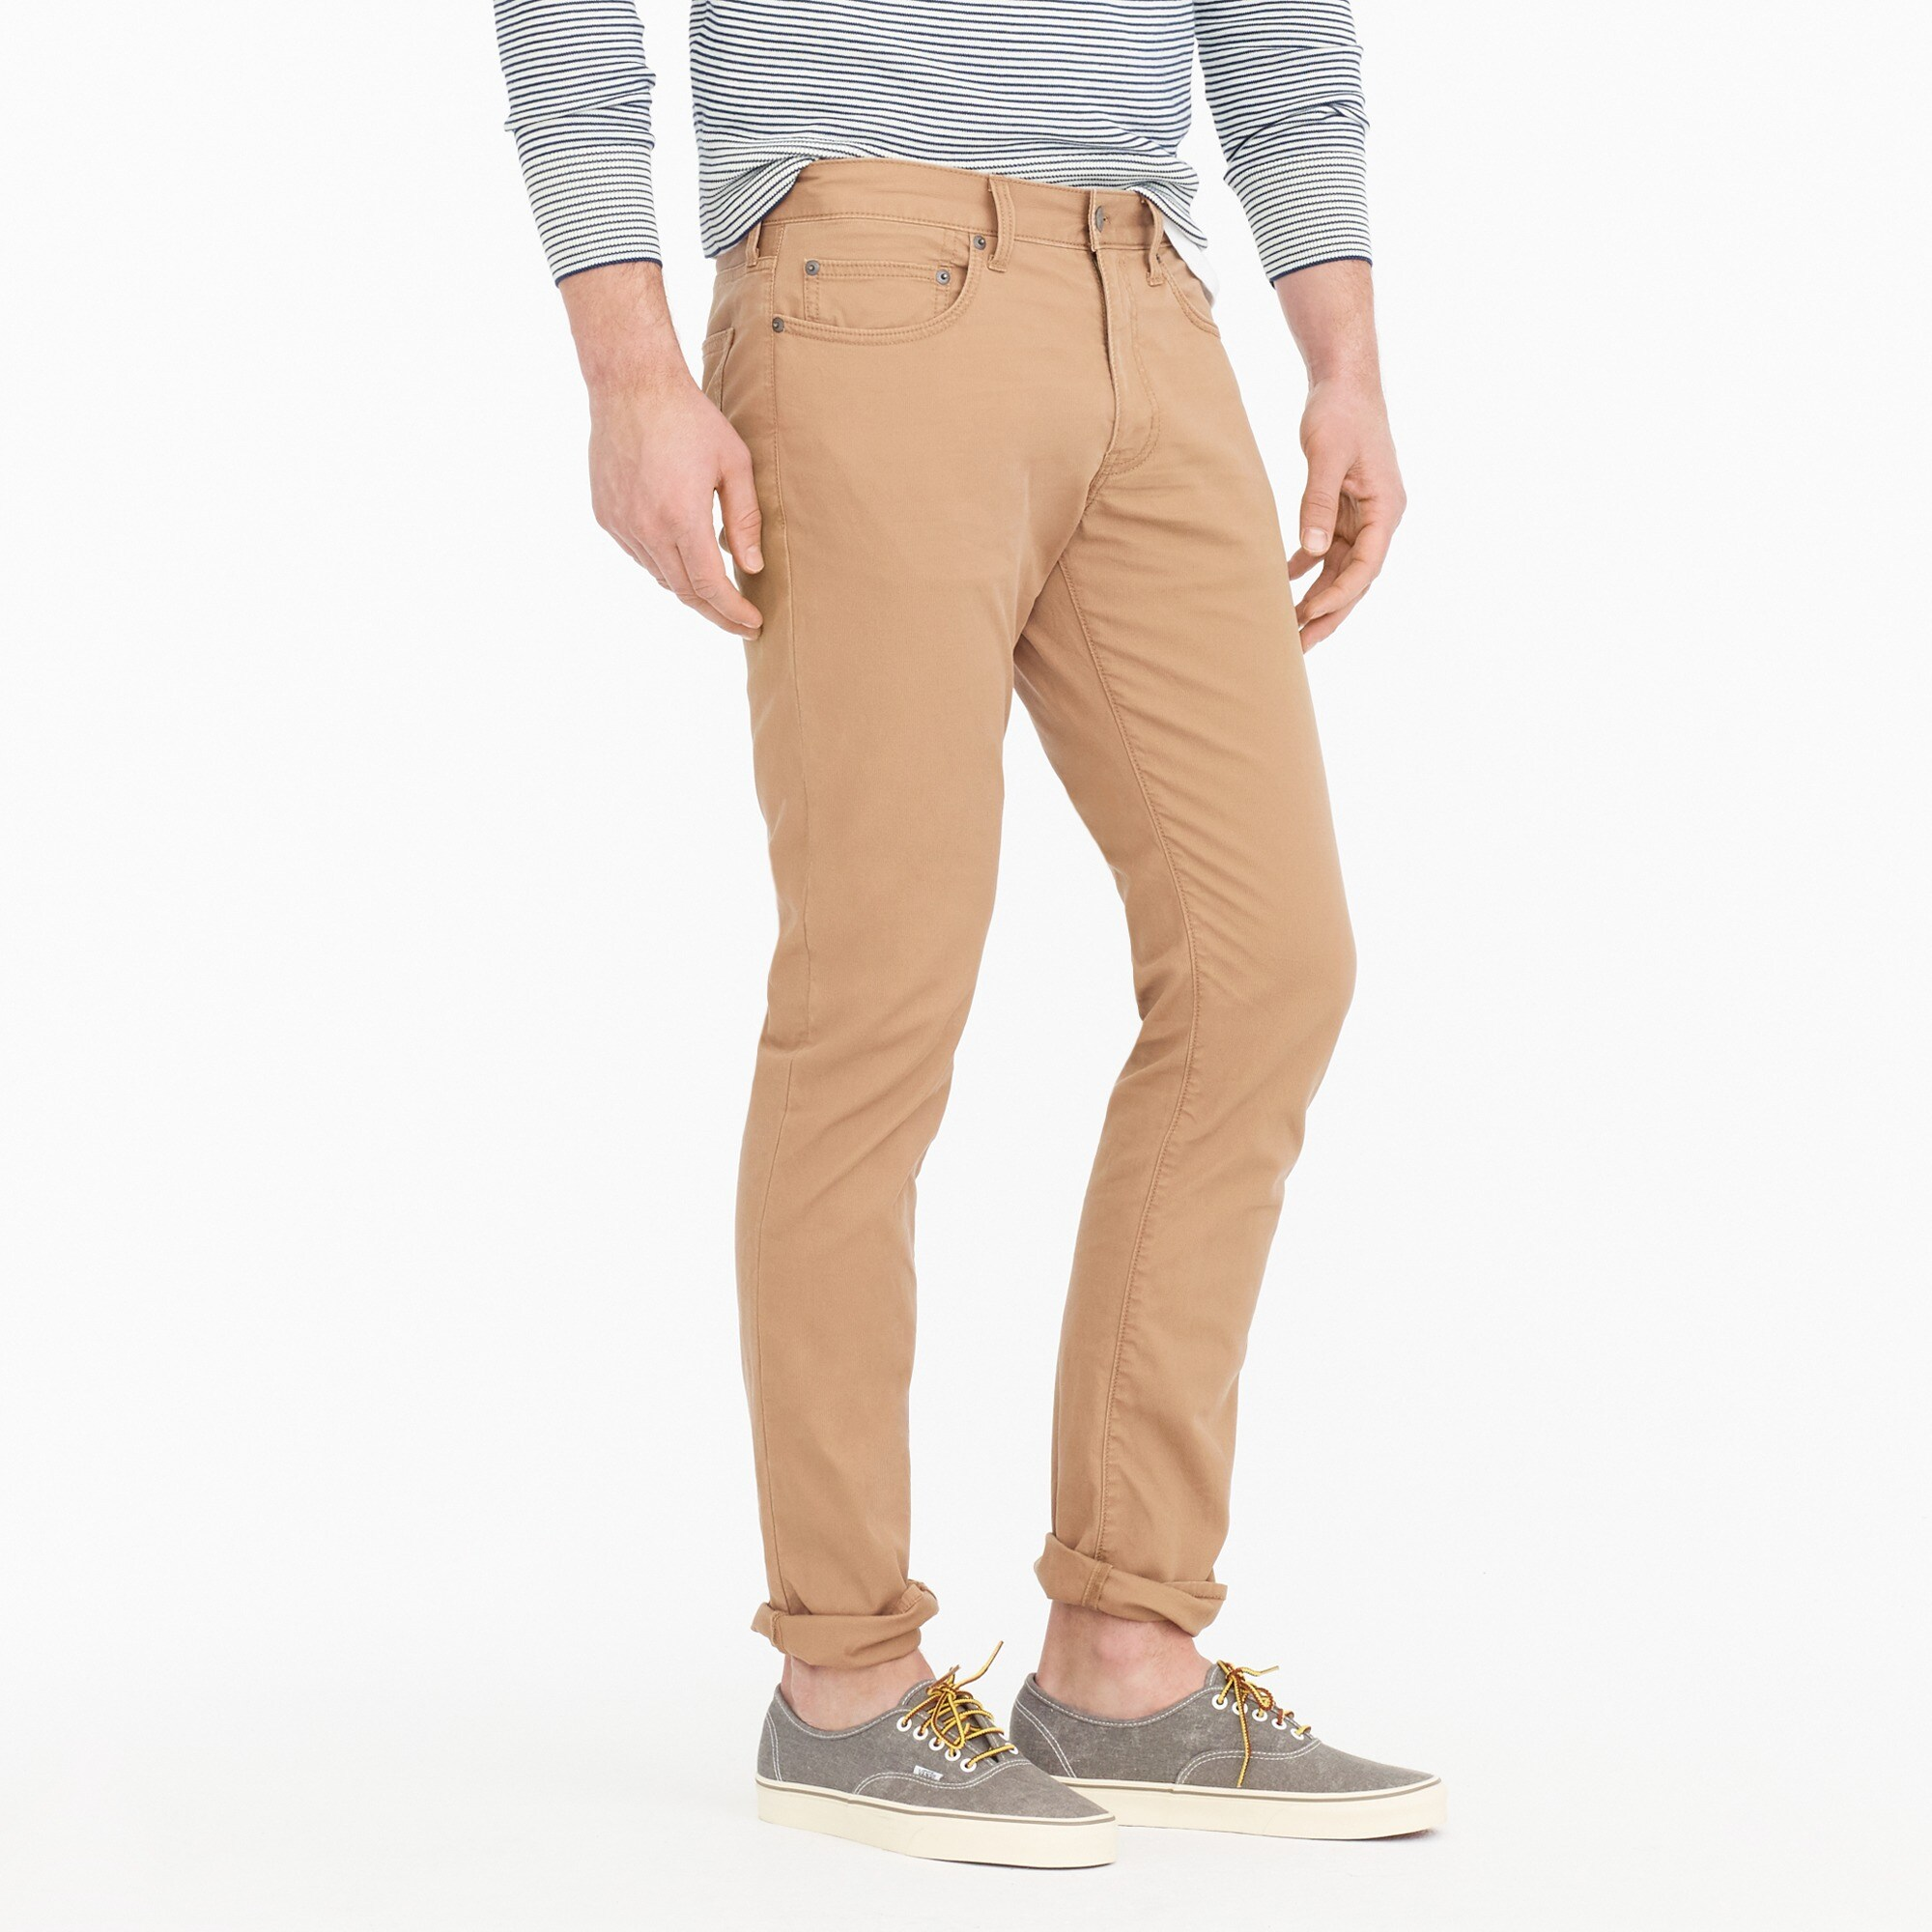 Image 2 for 484 Slim-fit pant in lightweight Bedford cord